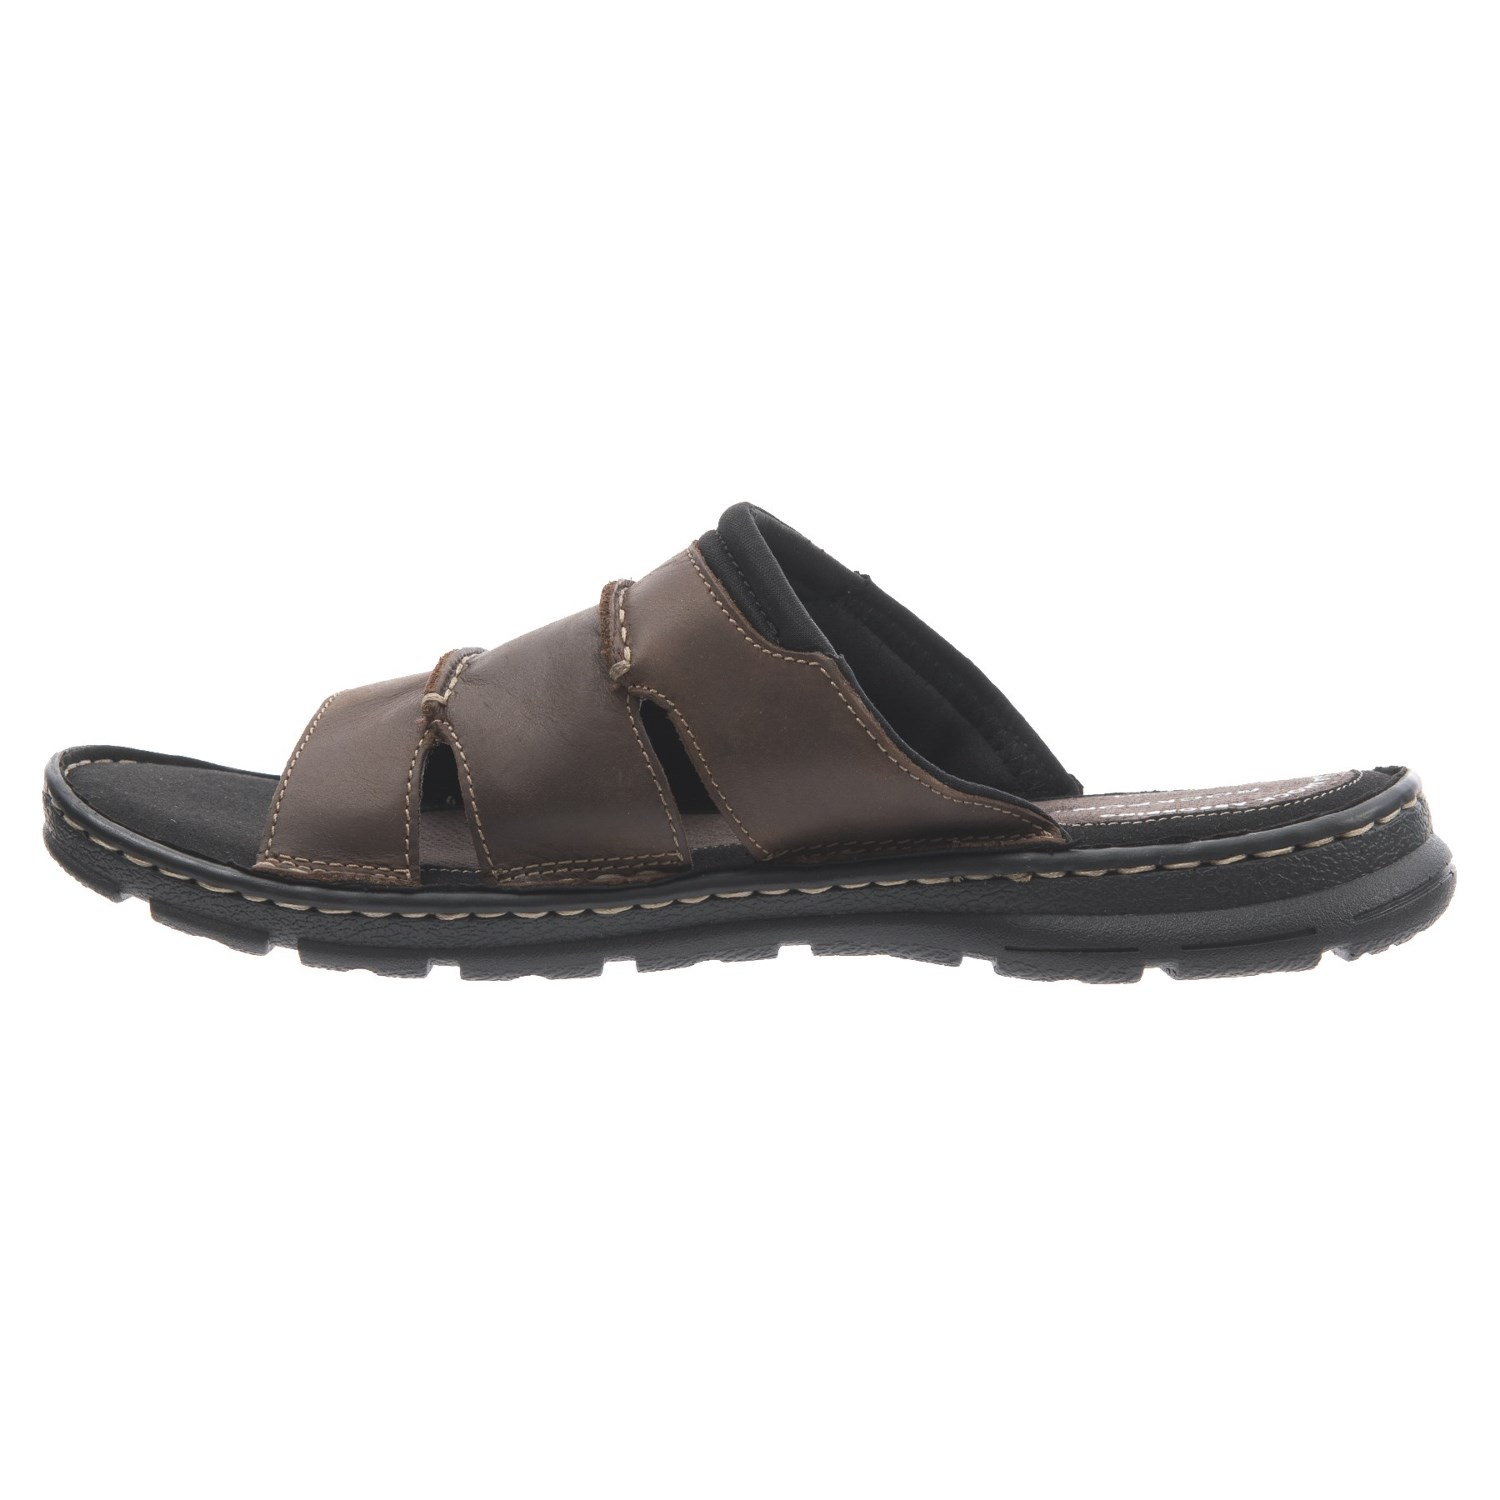 Men's Rockport Darwyn Slide Outdoor Sandals cheap 2015 new official site online free shipping best prices qrrcW